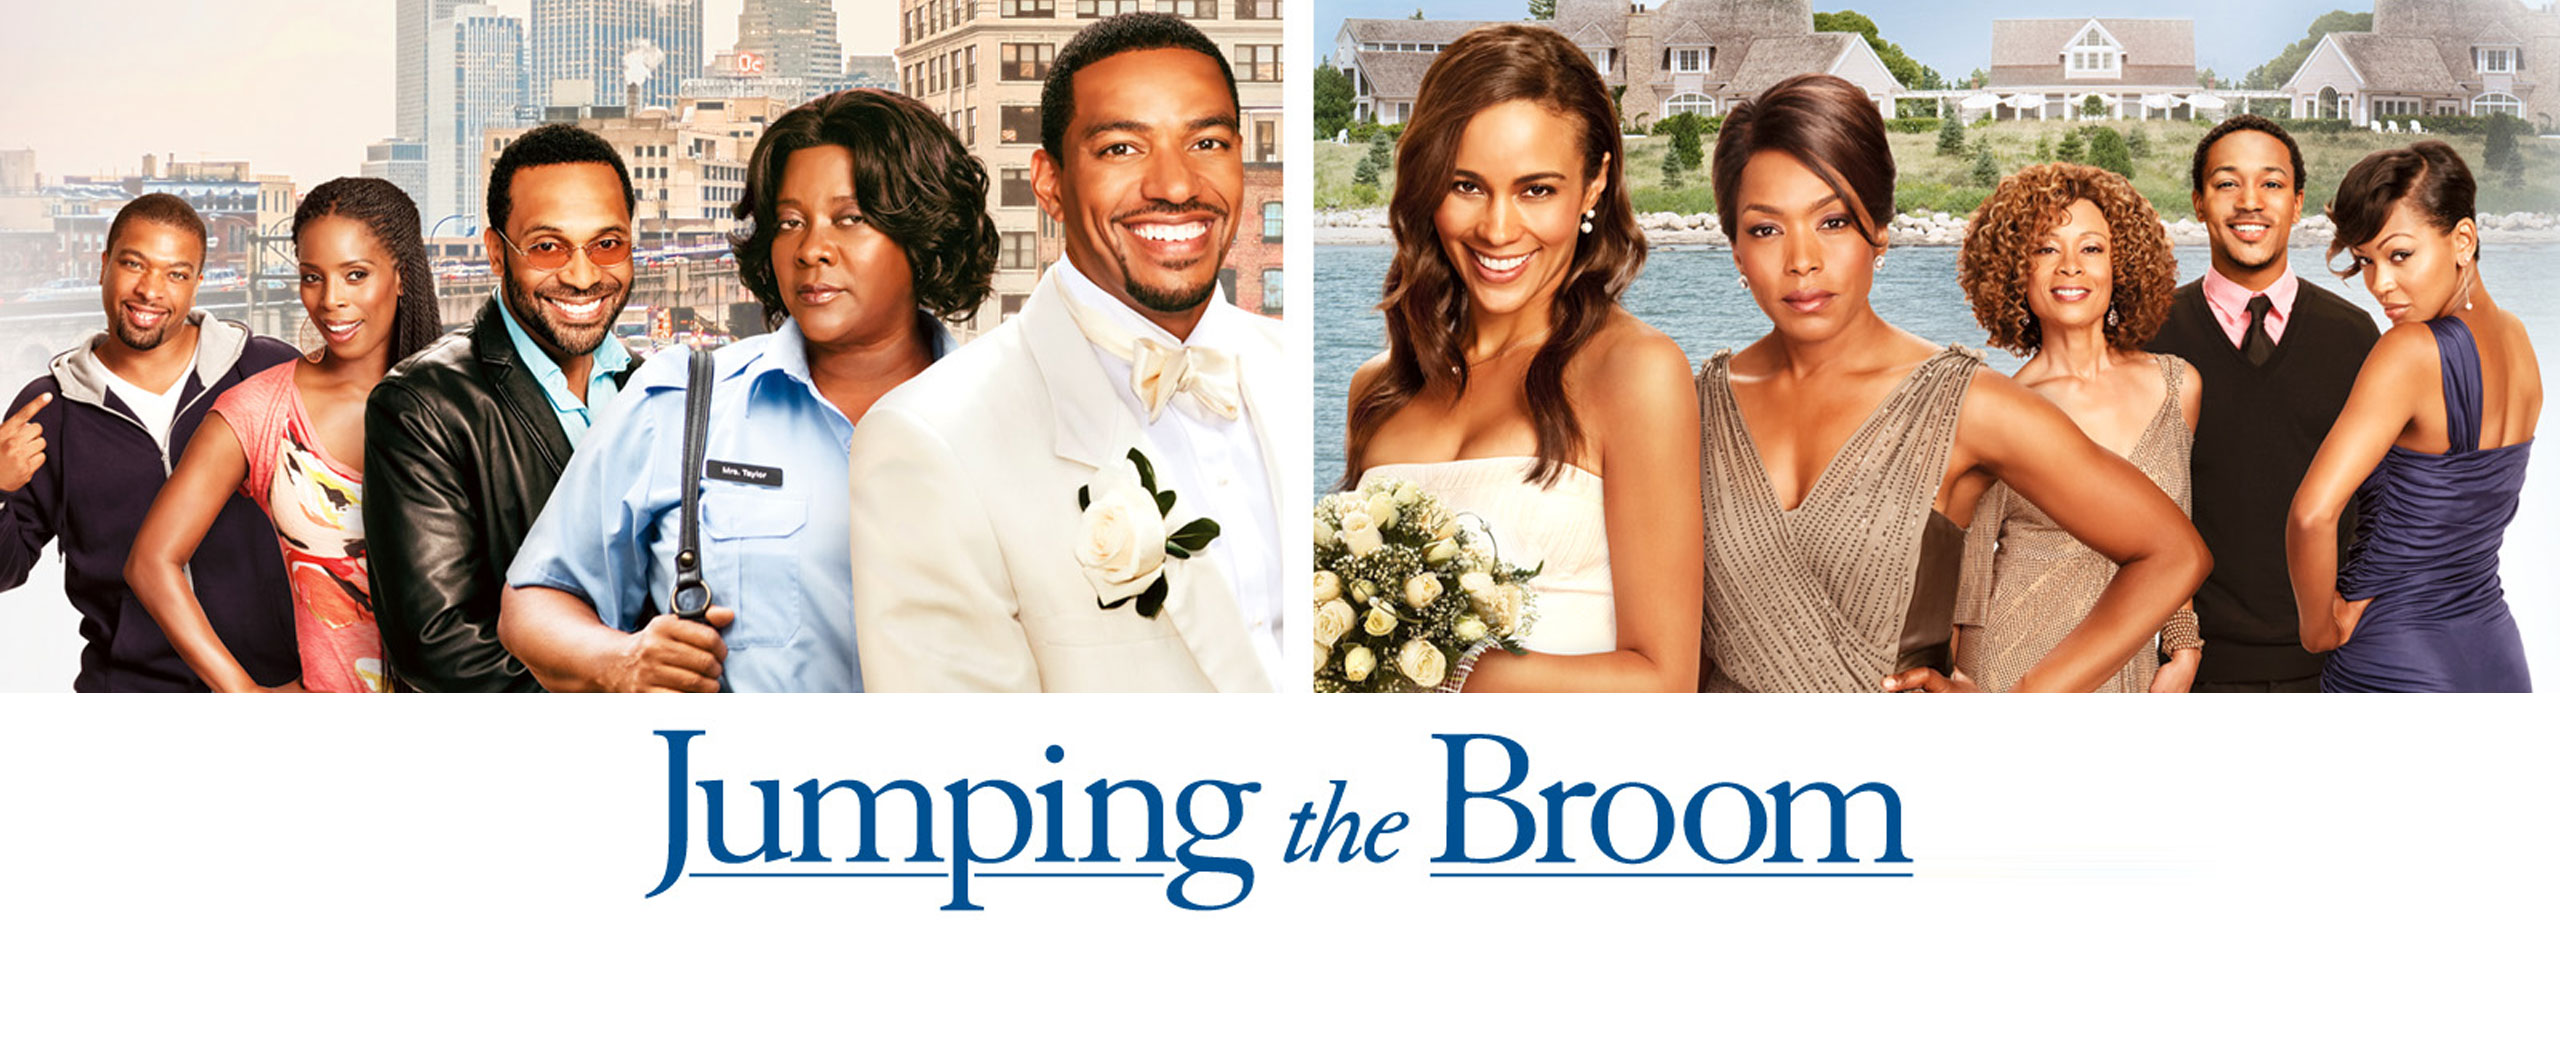 Jumping the Broom_ Tuesday